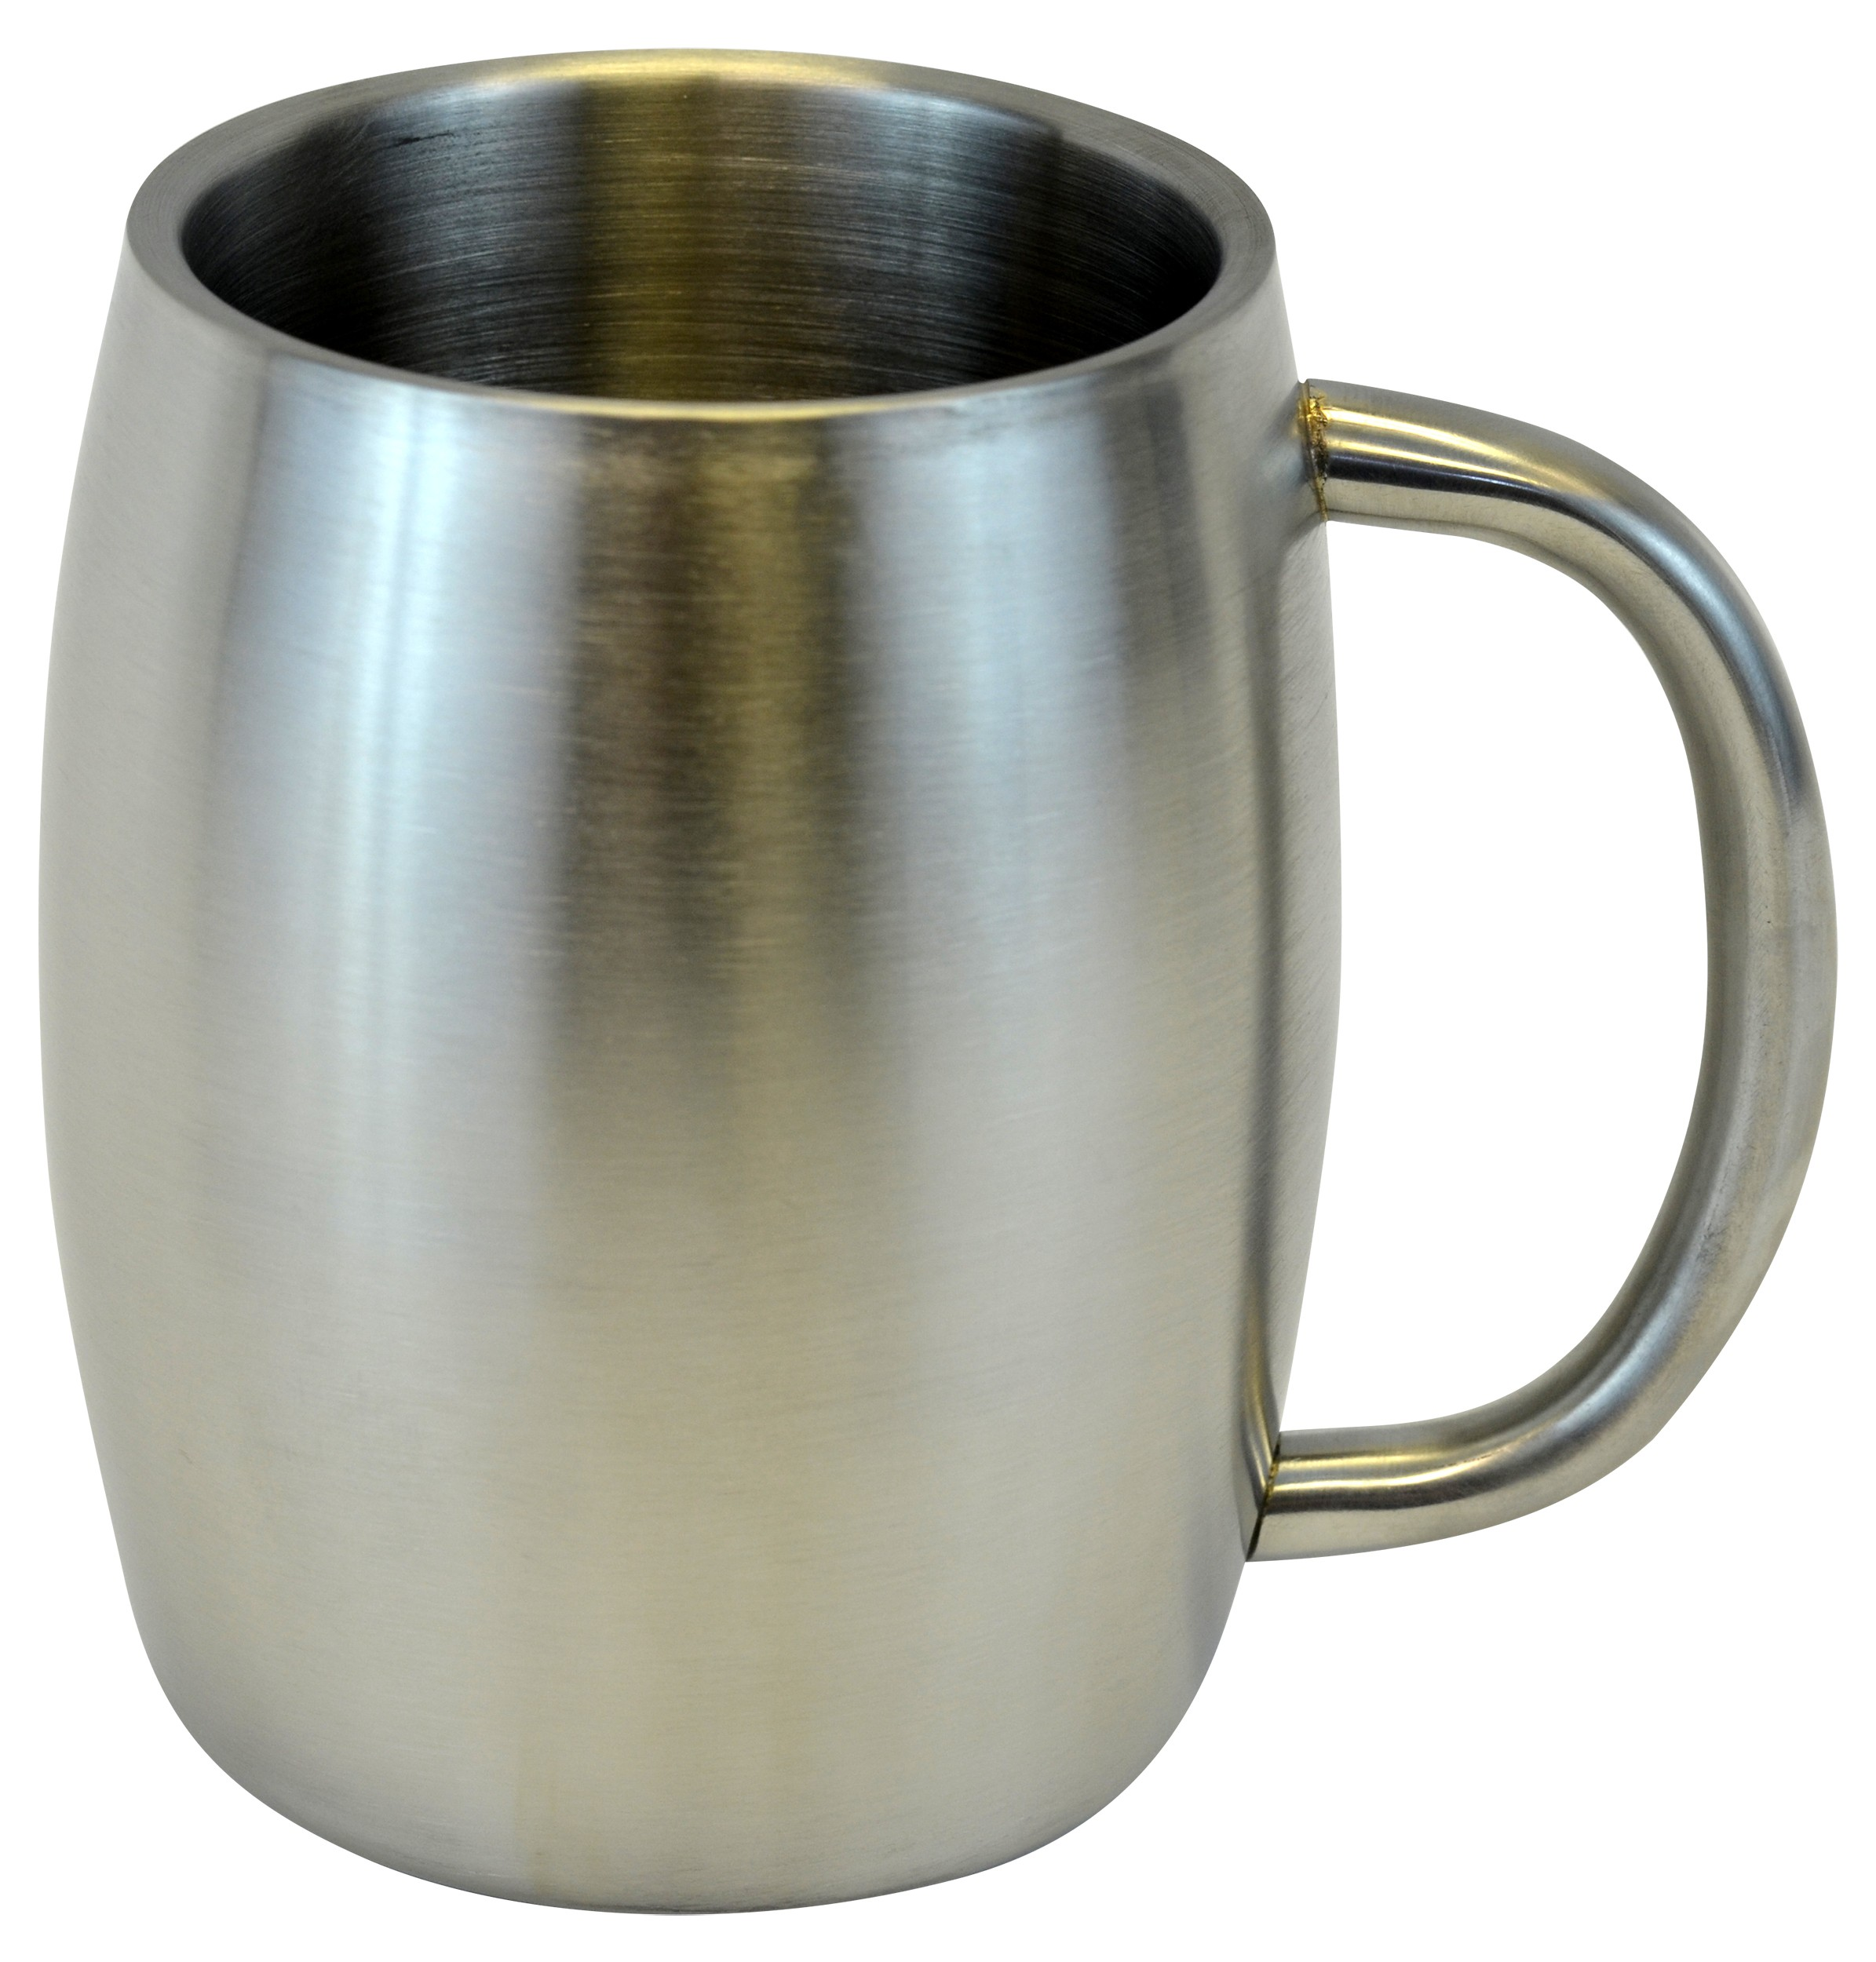 Stainless Double Wall Steel Beer / Coffee / Desk Mug, Smooth 14-Ounce